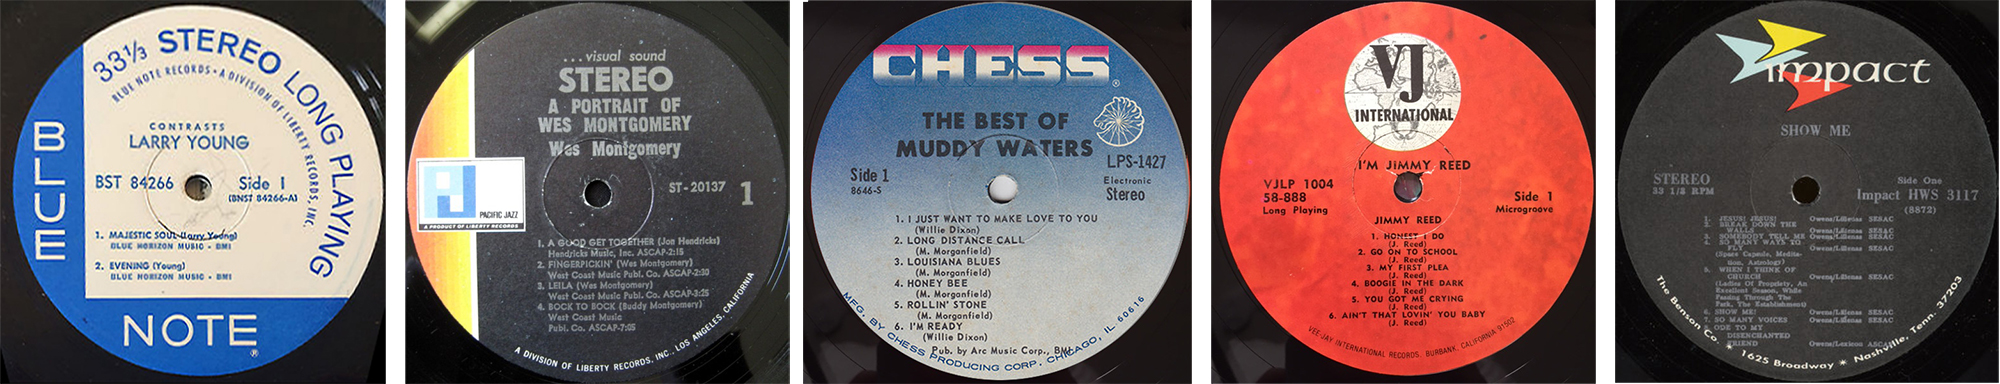 Blue Note In Mid 1966 Was Well Documented